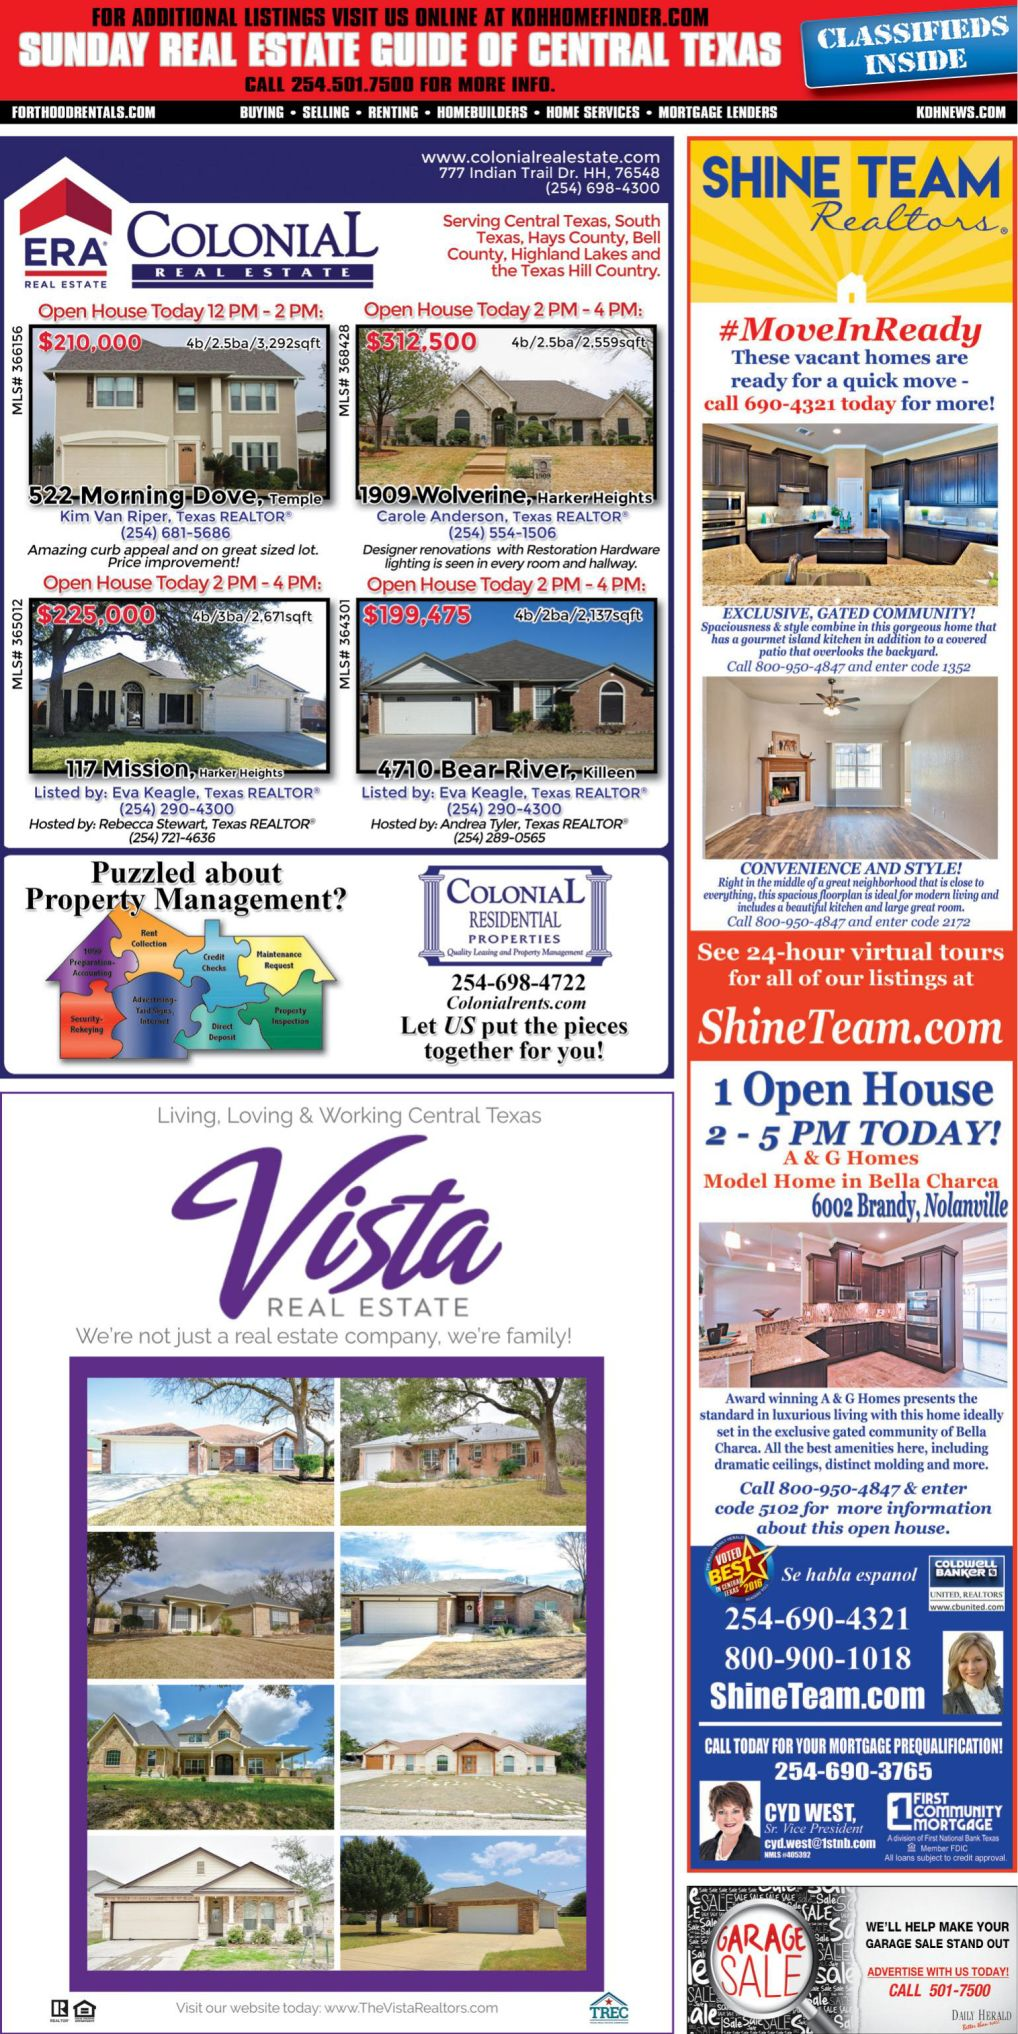 Sunday Real Estate Guide March 3rd